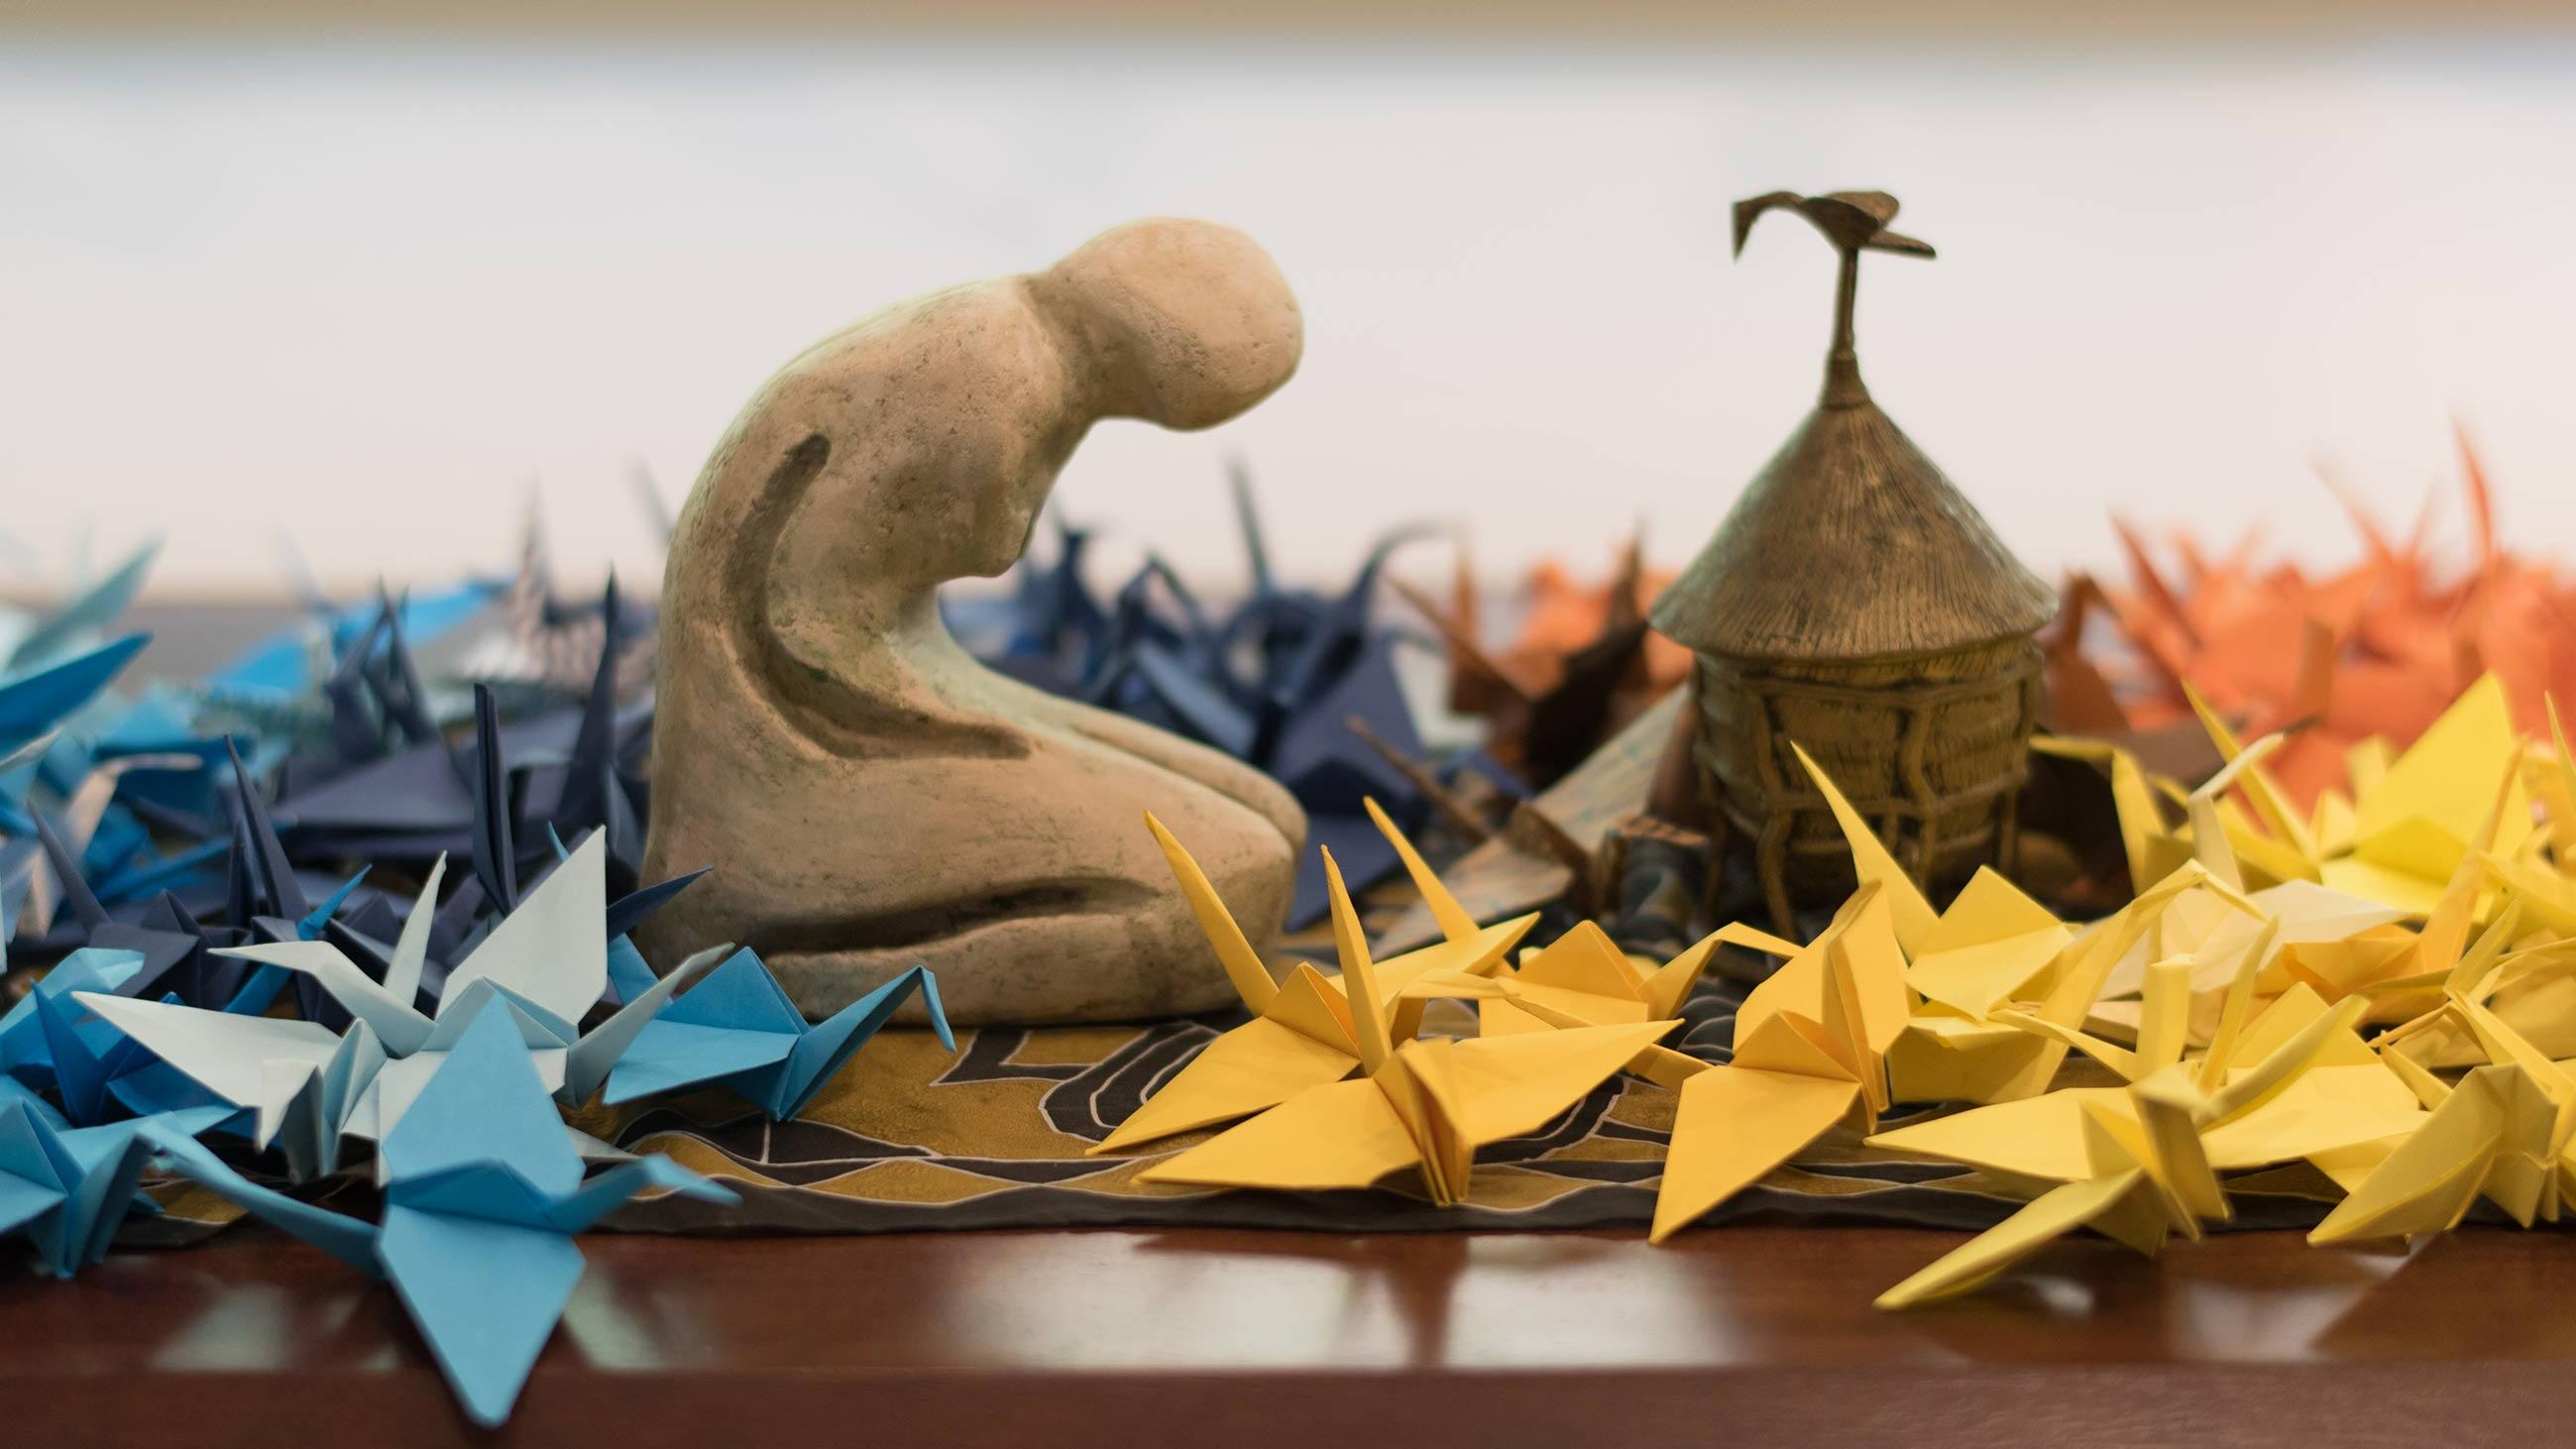 Small statue kneeling among multi-colored paper cranes